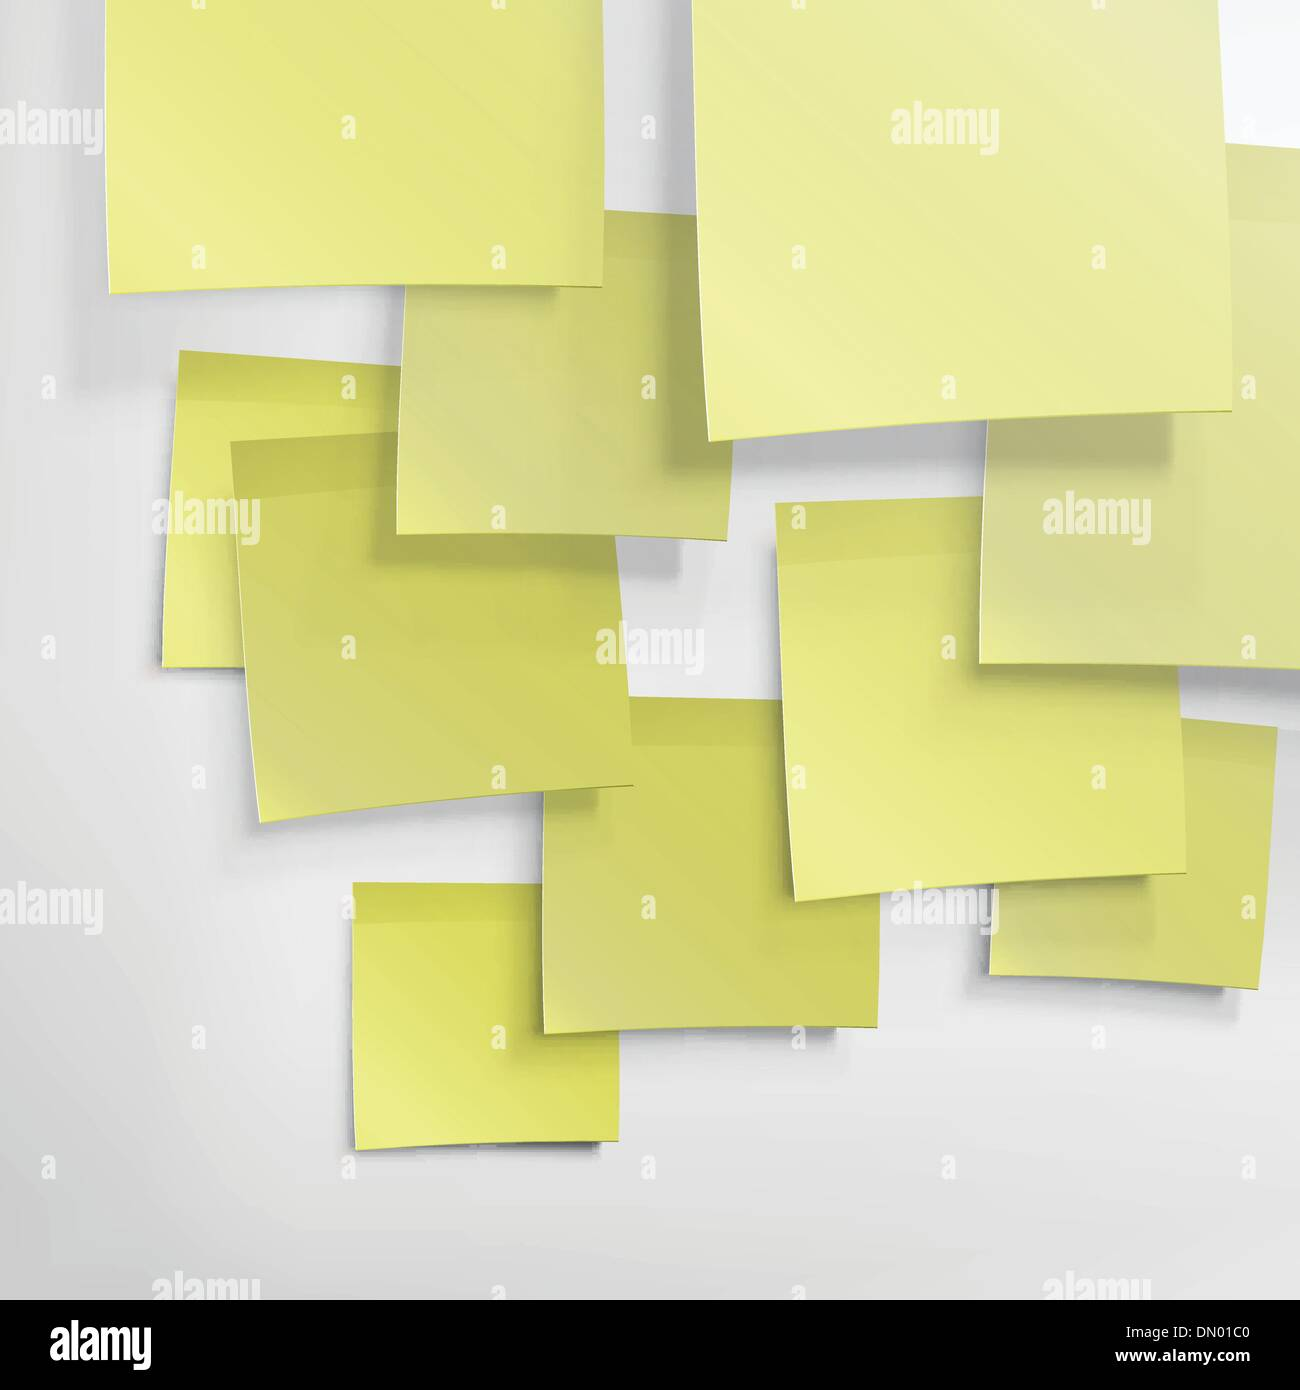 Yellow sticky notes. Sfondo astratto, vettore EPS10 Immagini Stock